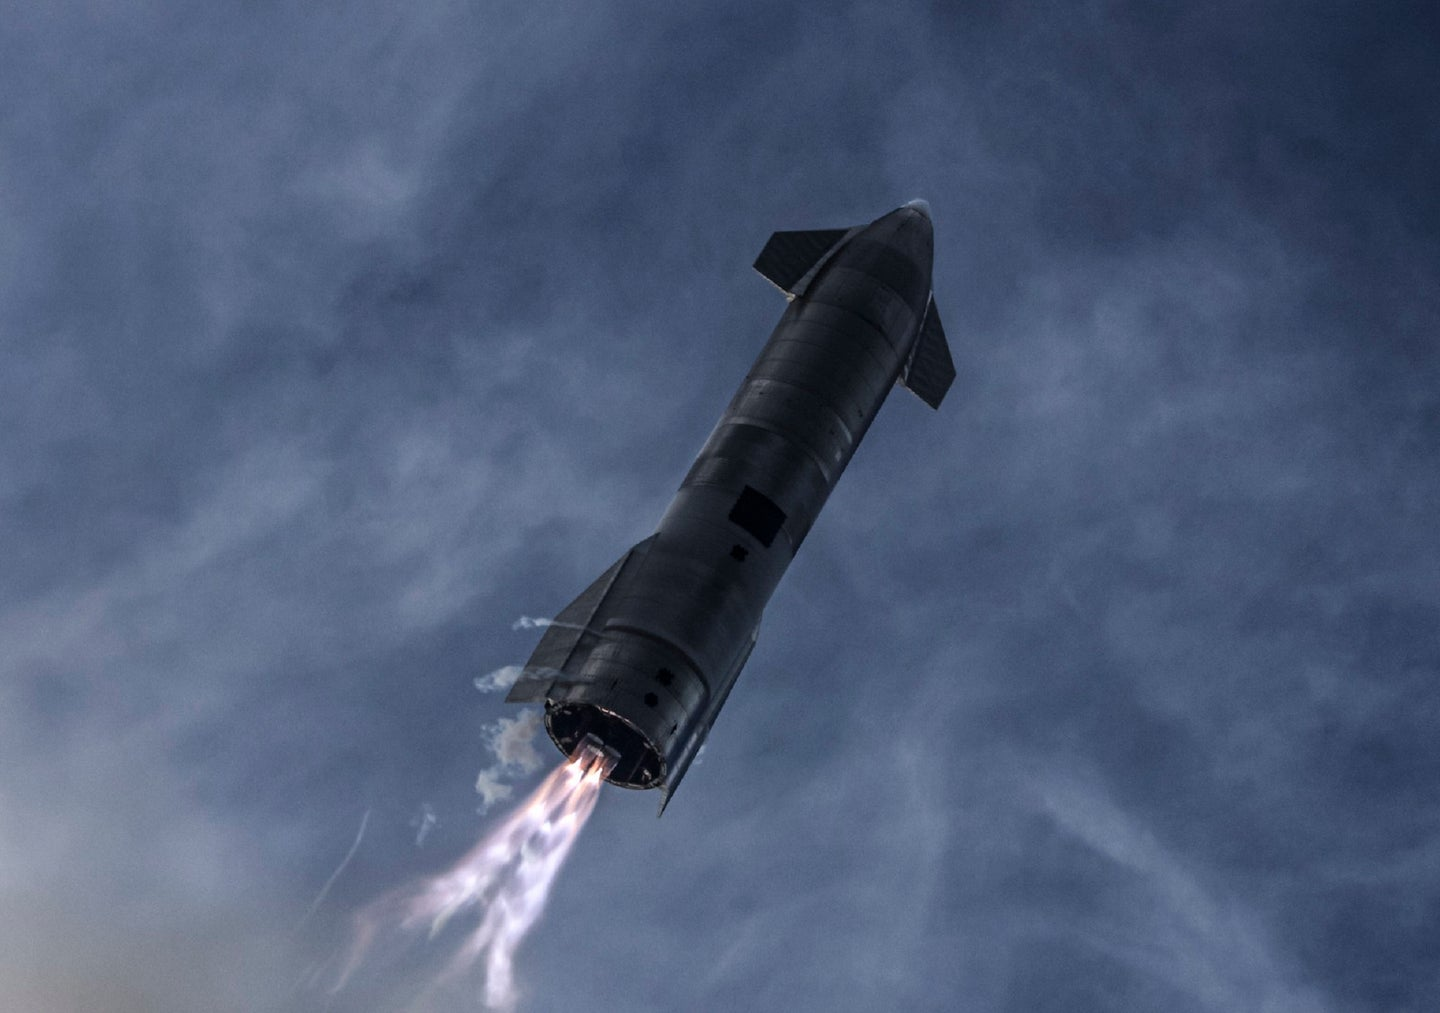 Starship SN10 rockets during a SpaceX test flight